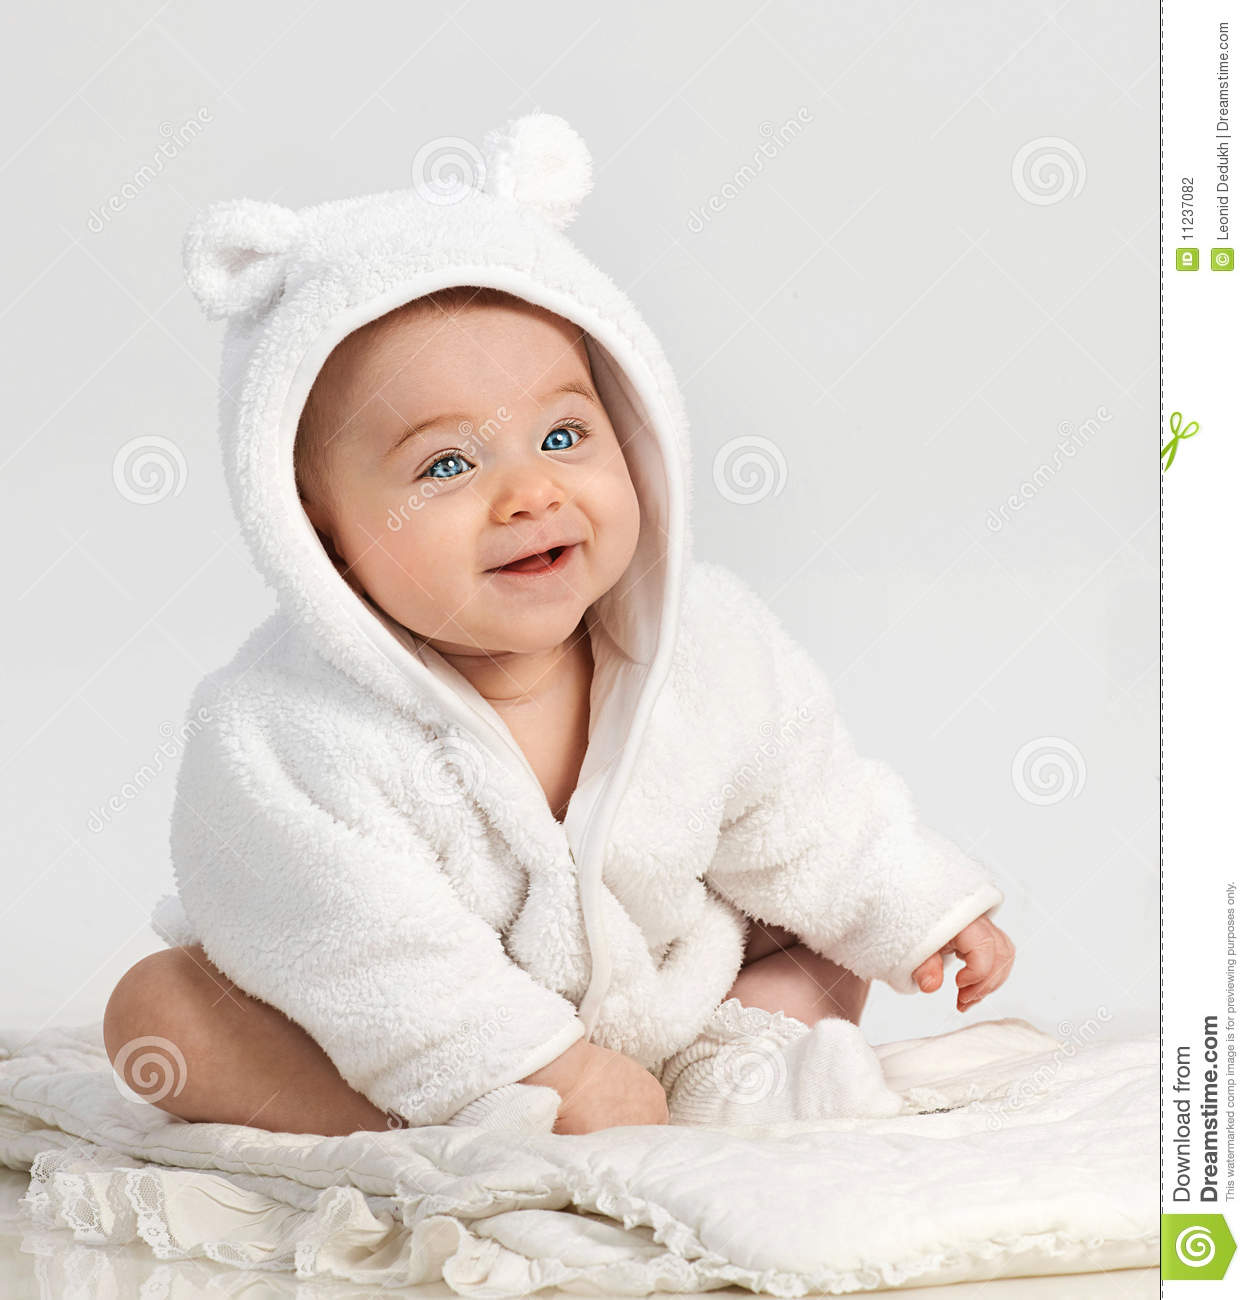 Little Child Baby Stock Photography - Image: 11237082